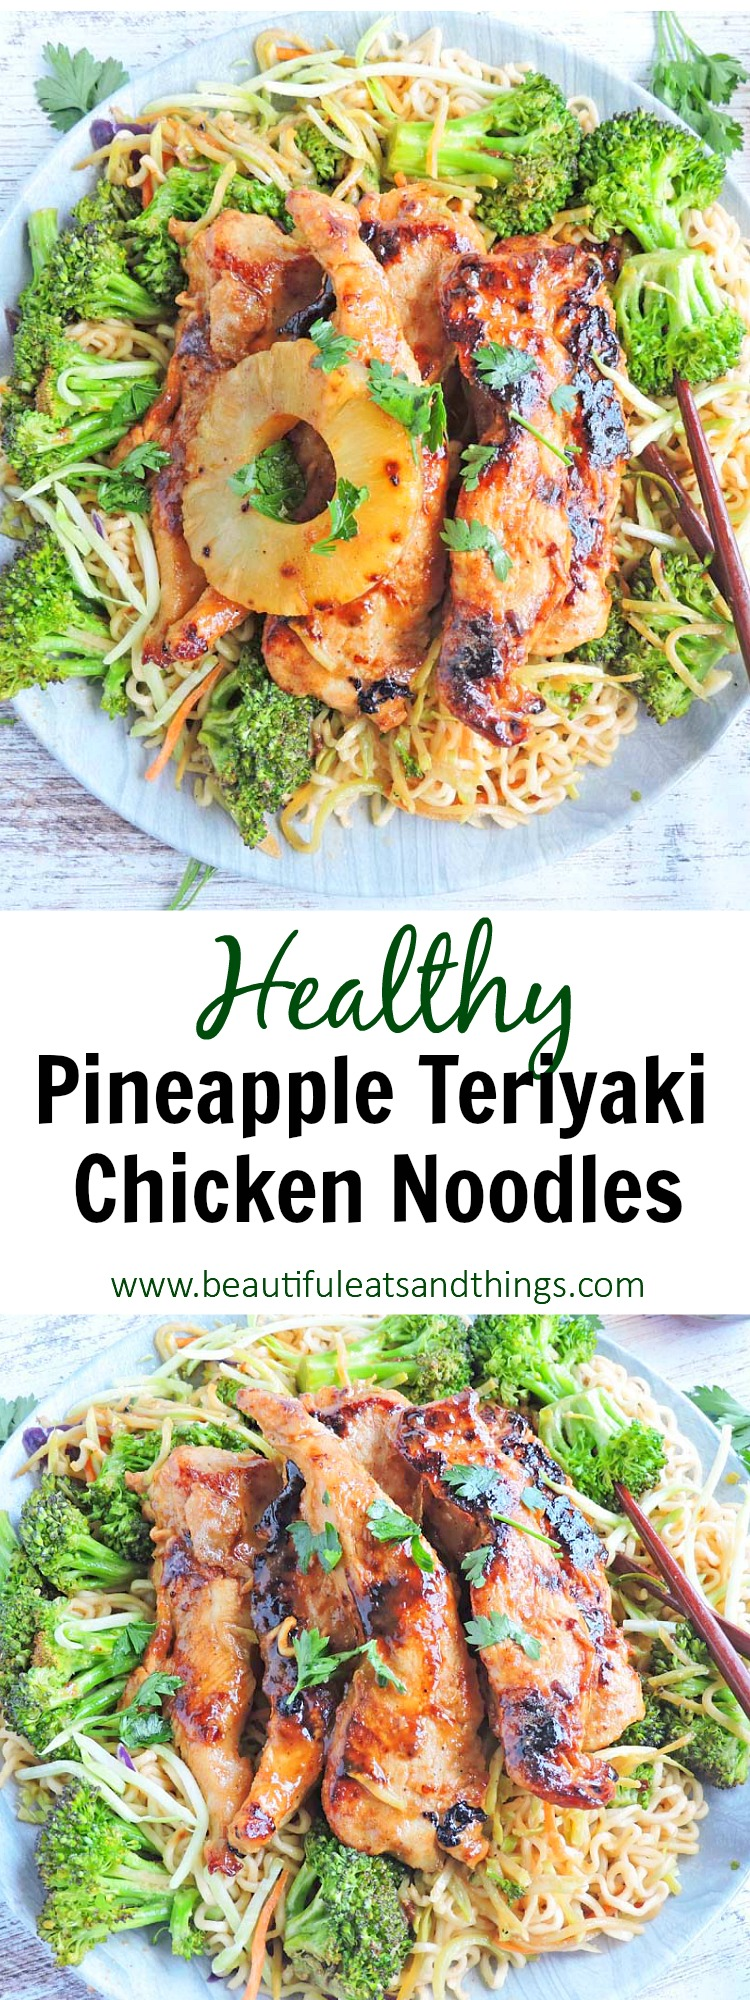 Pineapple Teriyaki Chicken over Noodles